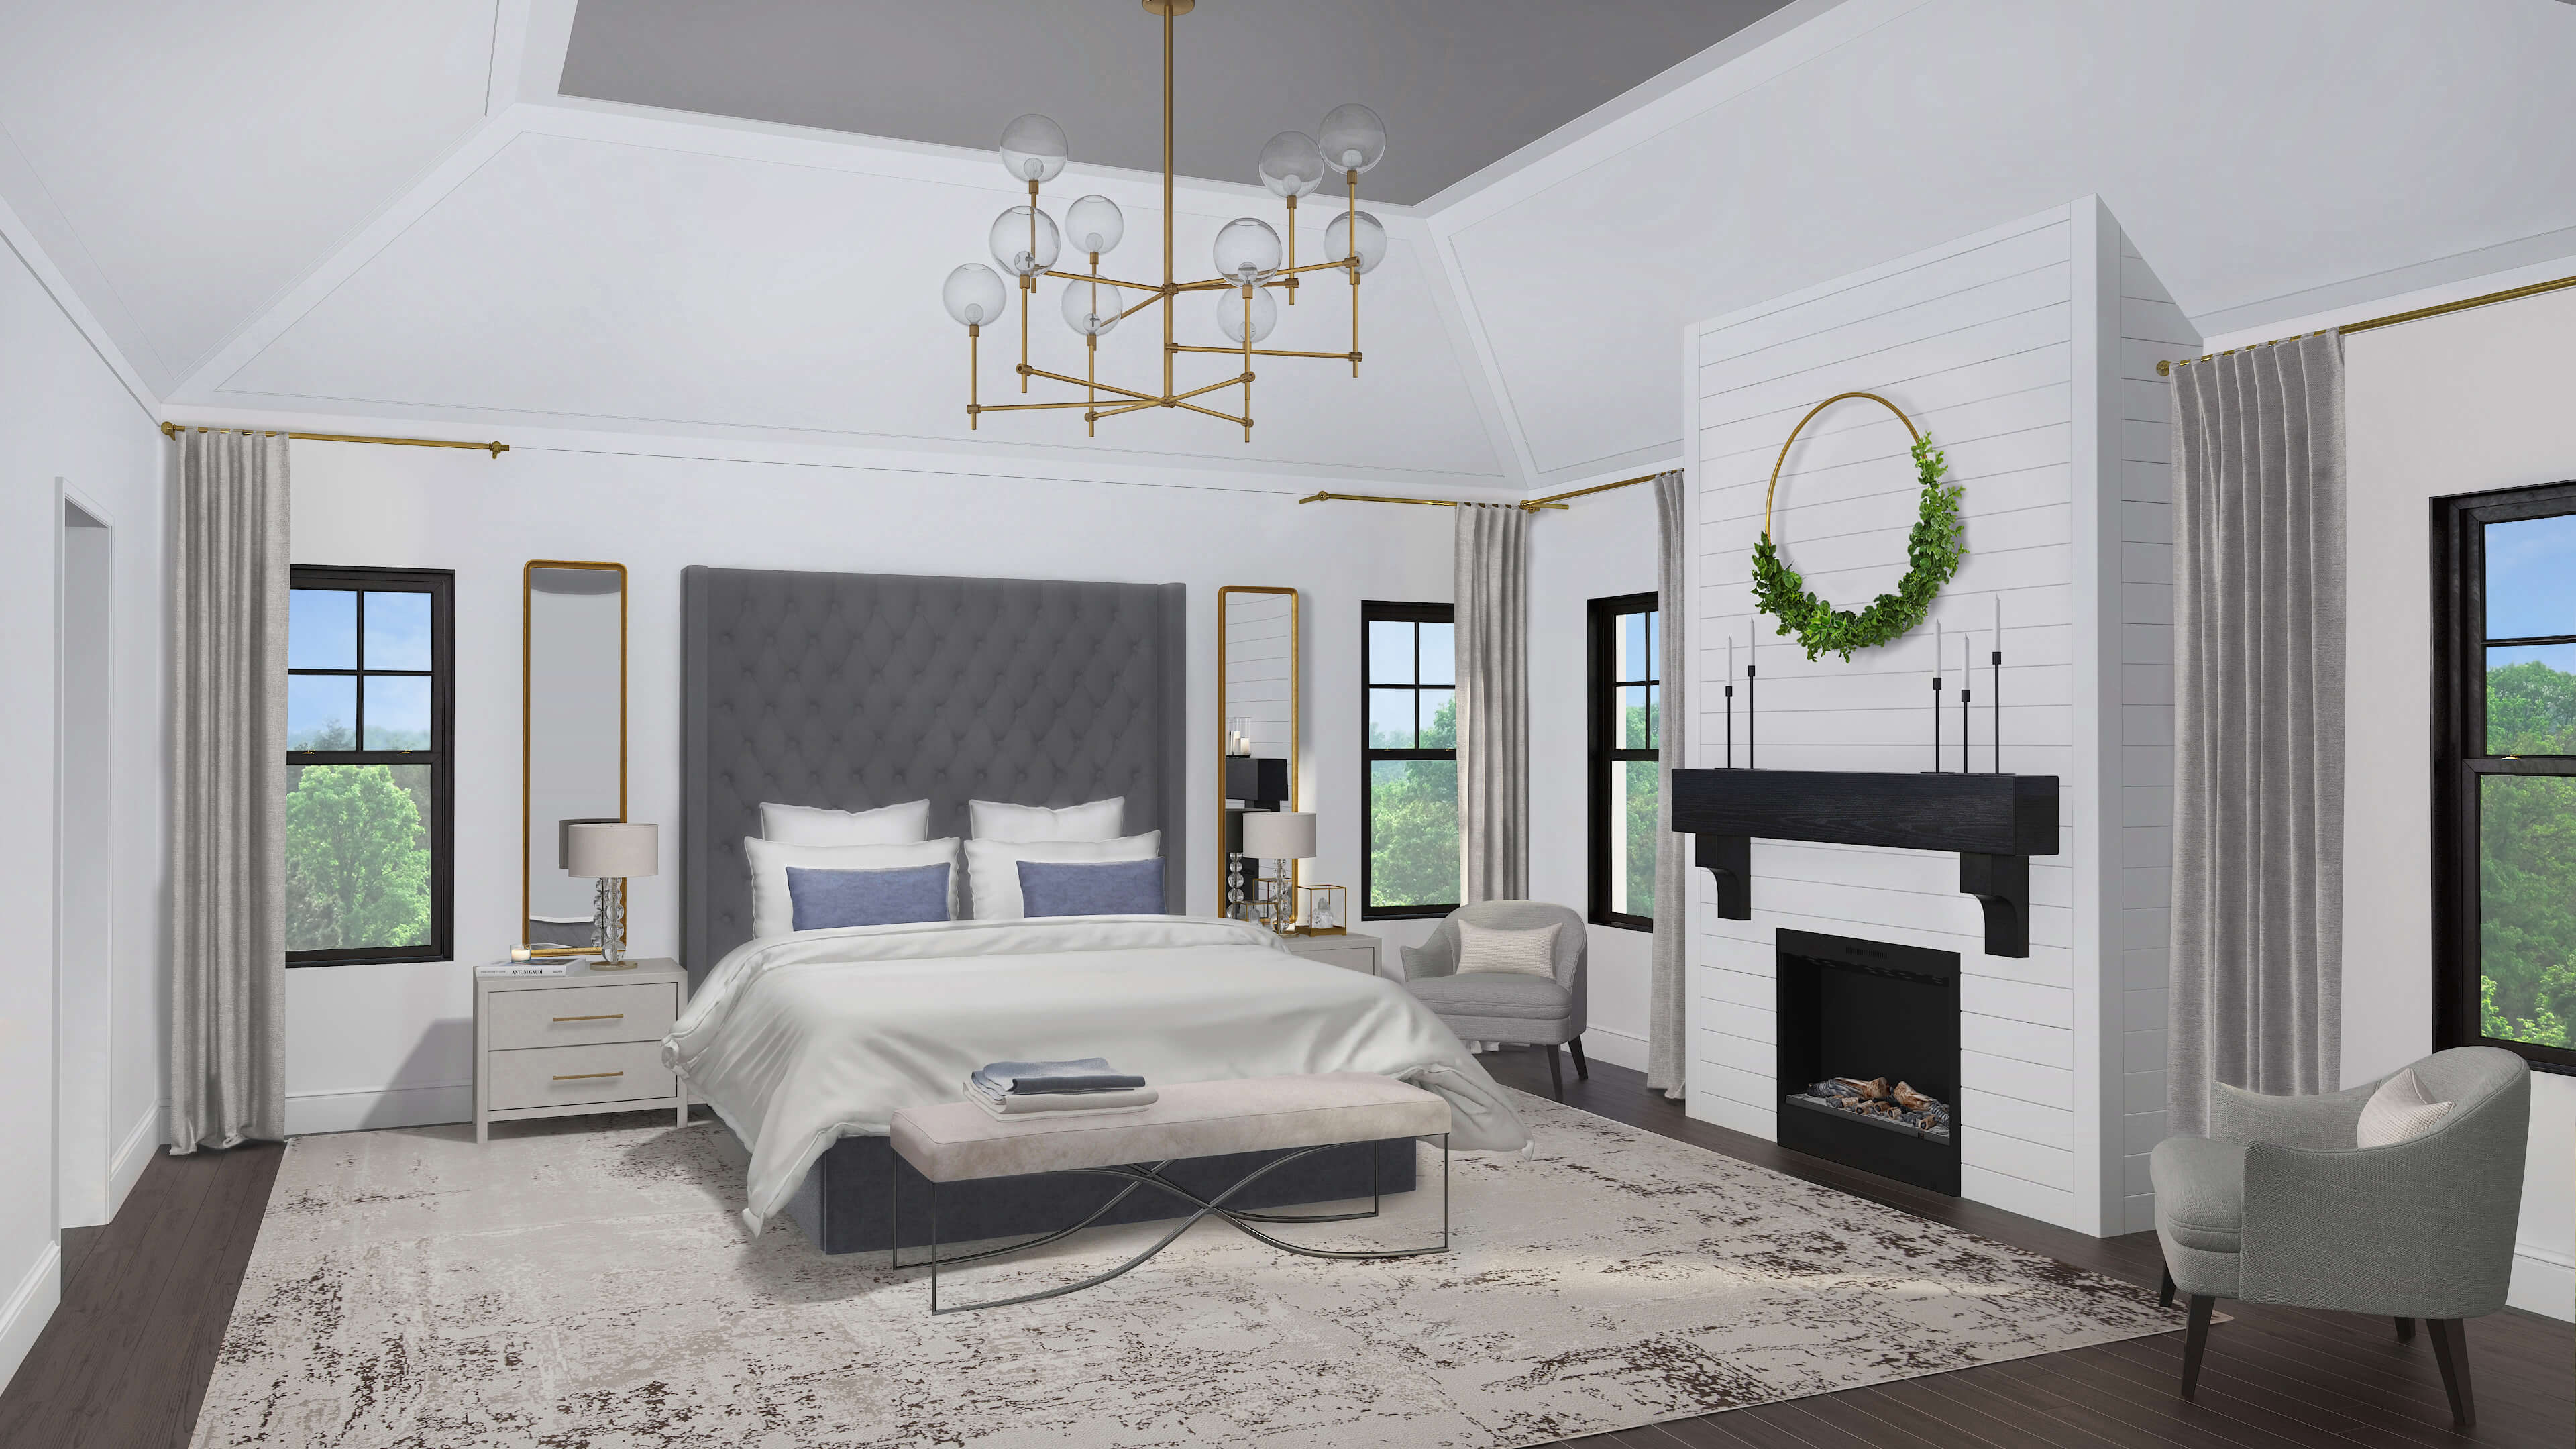 home-interior-in-New-Jersey-4